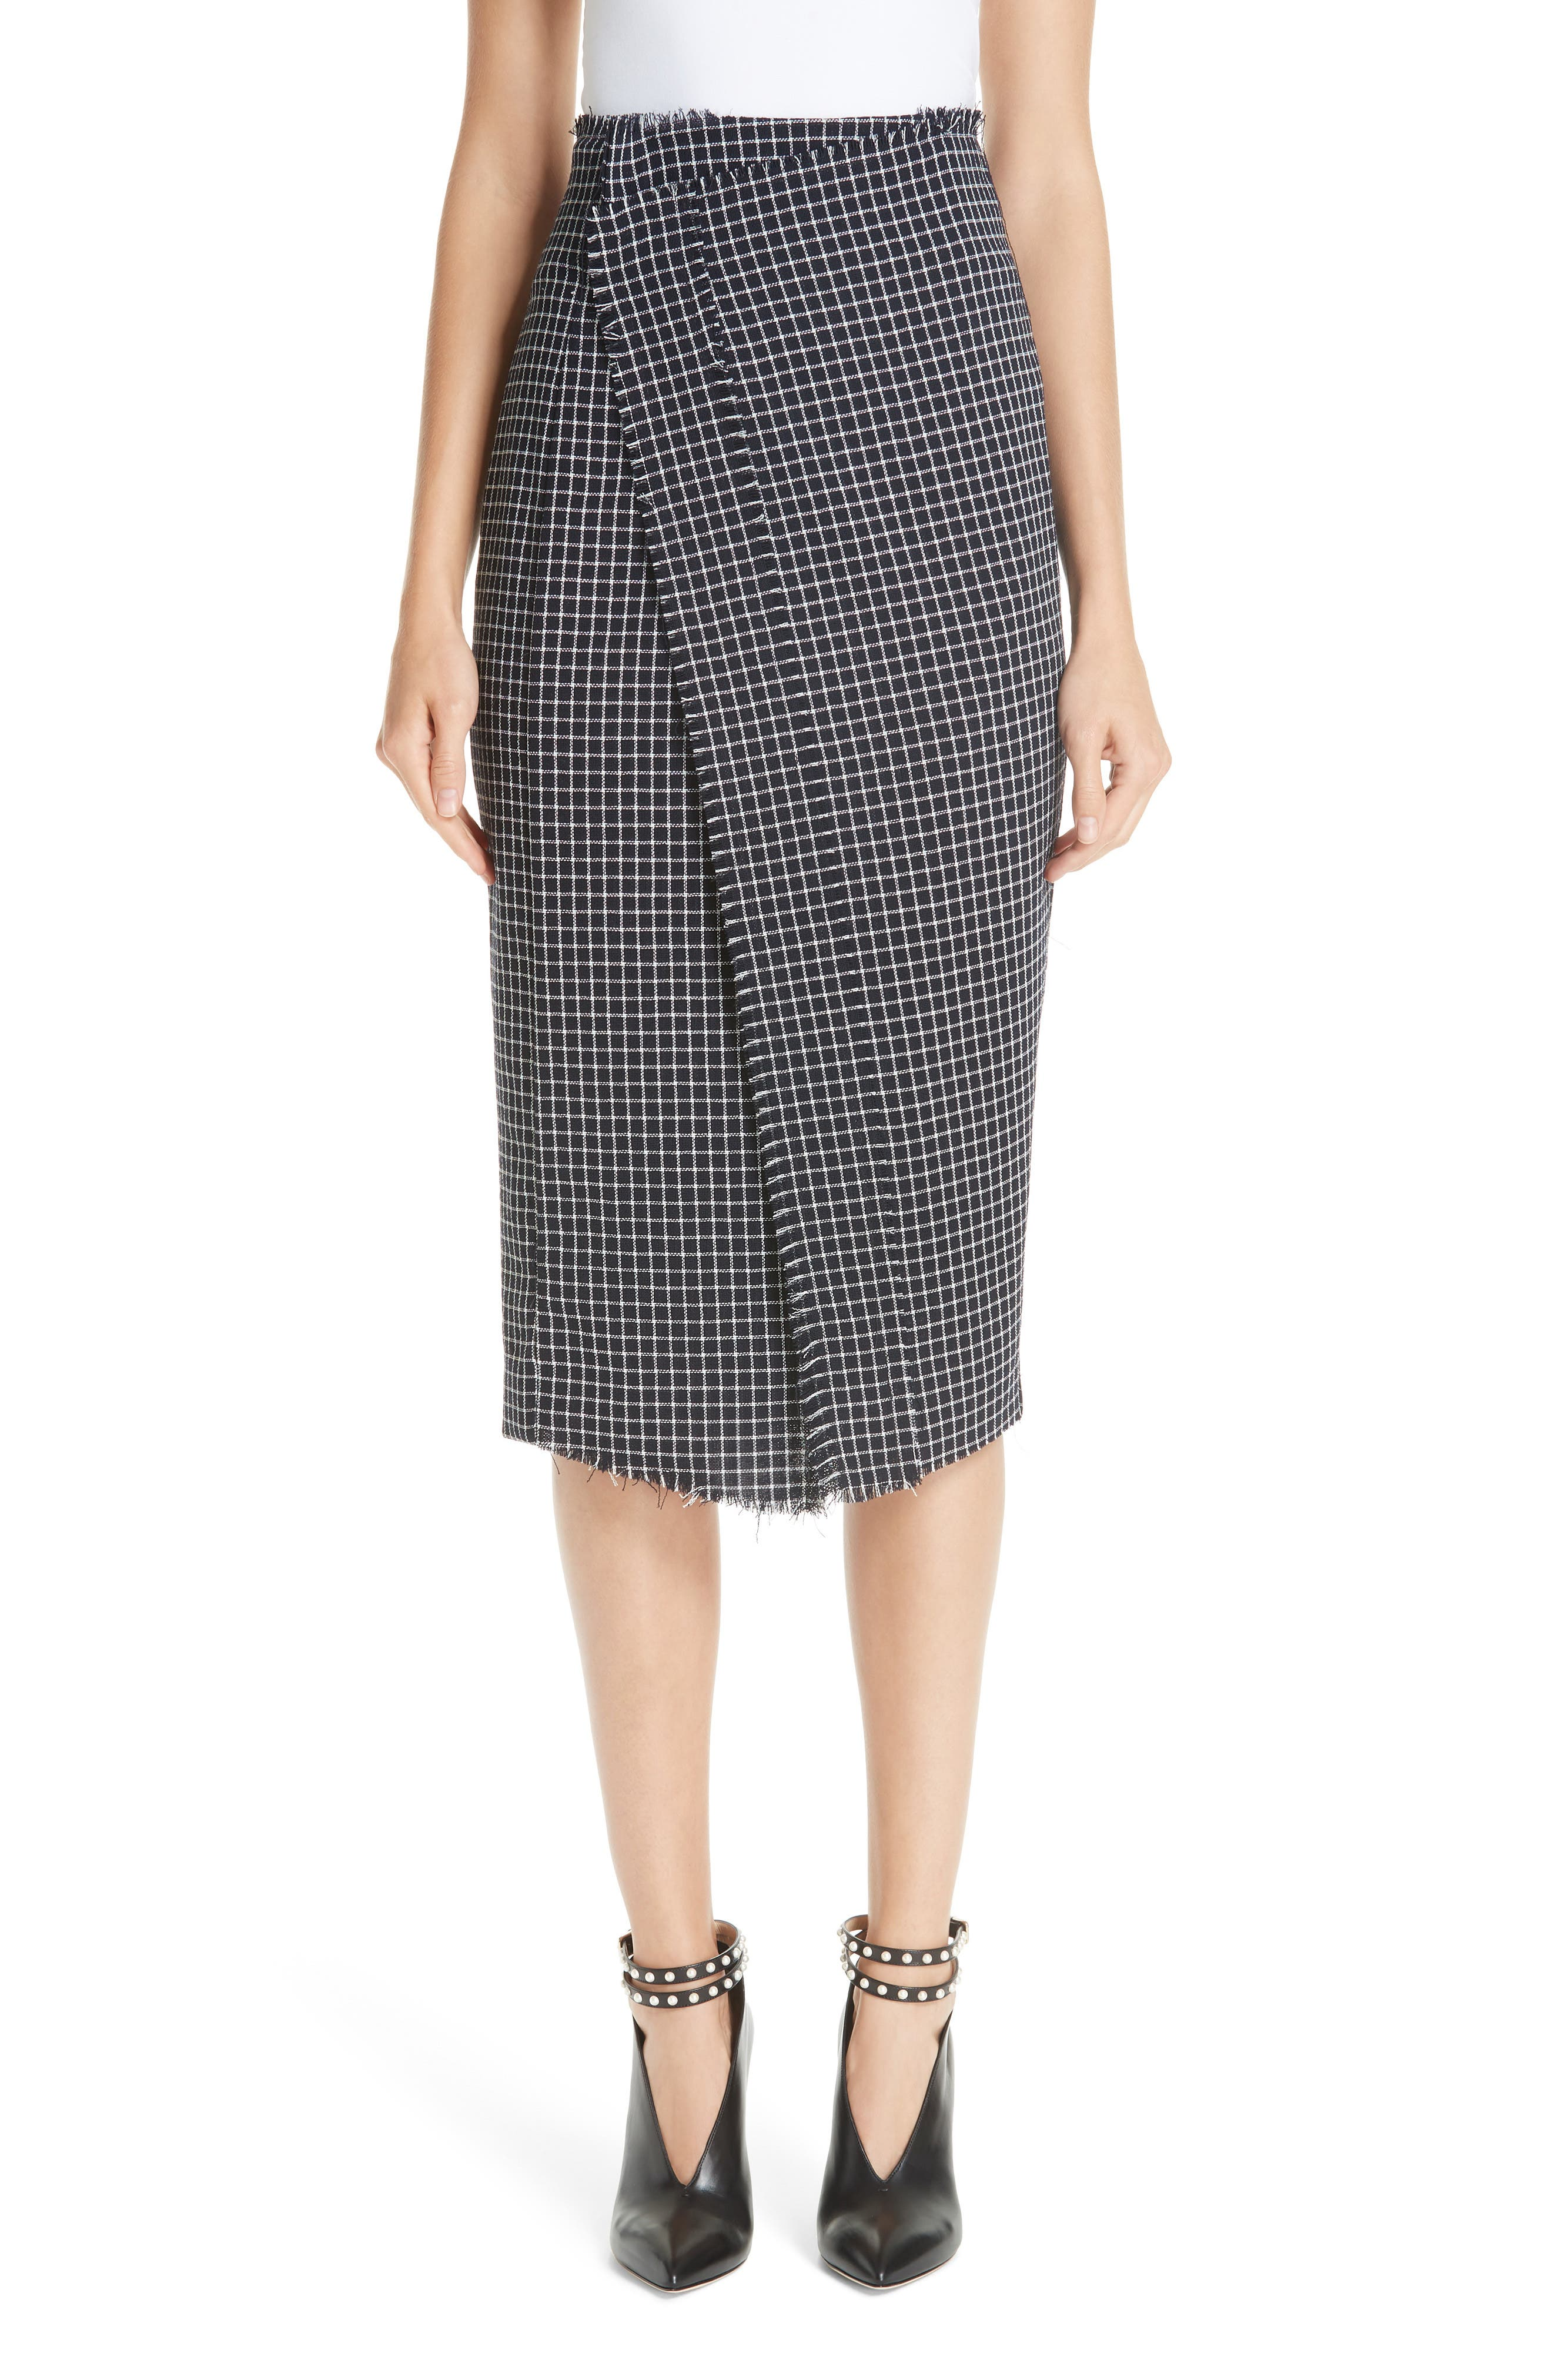 JASON WU COLLECTION Wool Check Skirt, Main, color, 001